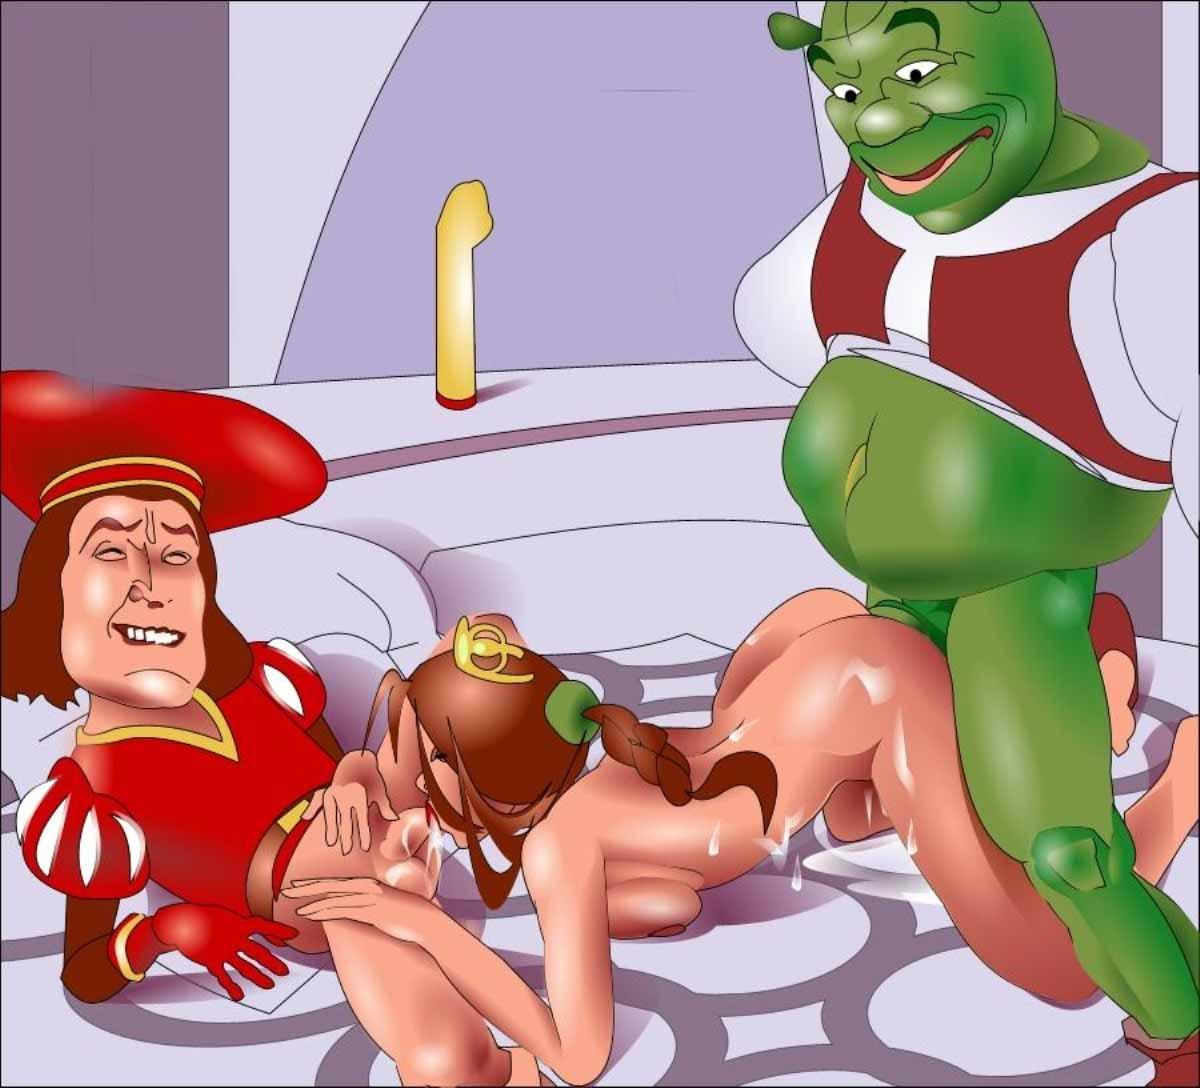 Shrek sex pic naked movie